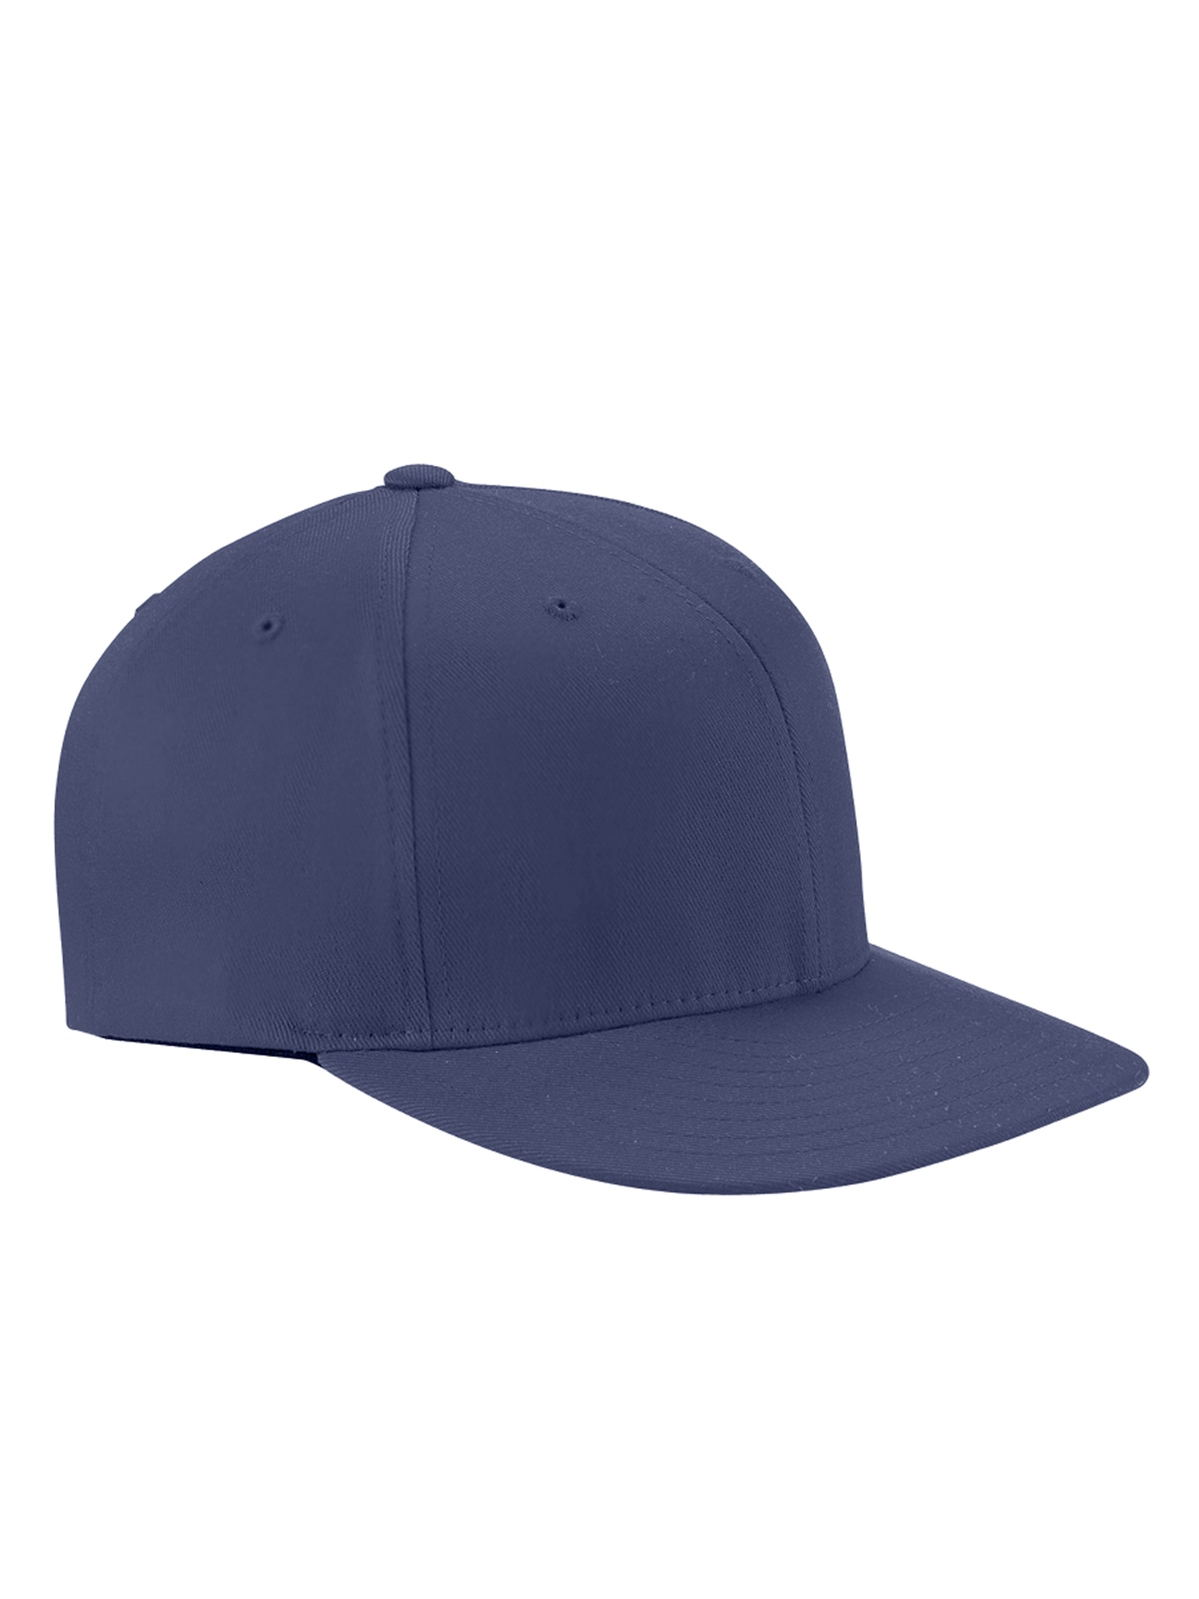 Flexfit 6297F - Adult Wooly Twill Pro Baseball On-Field Shape Cap w/Flat Bill